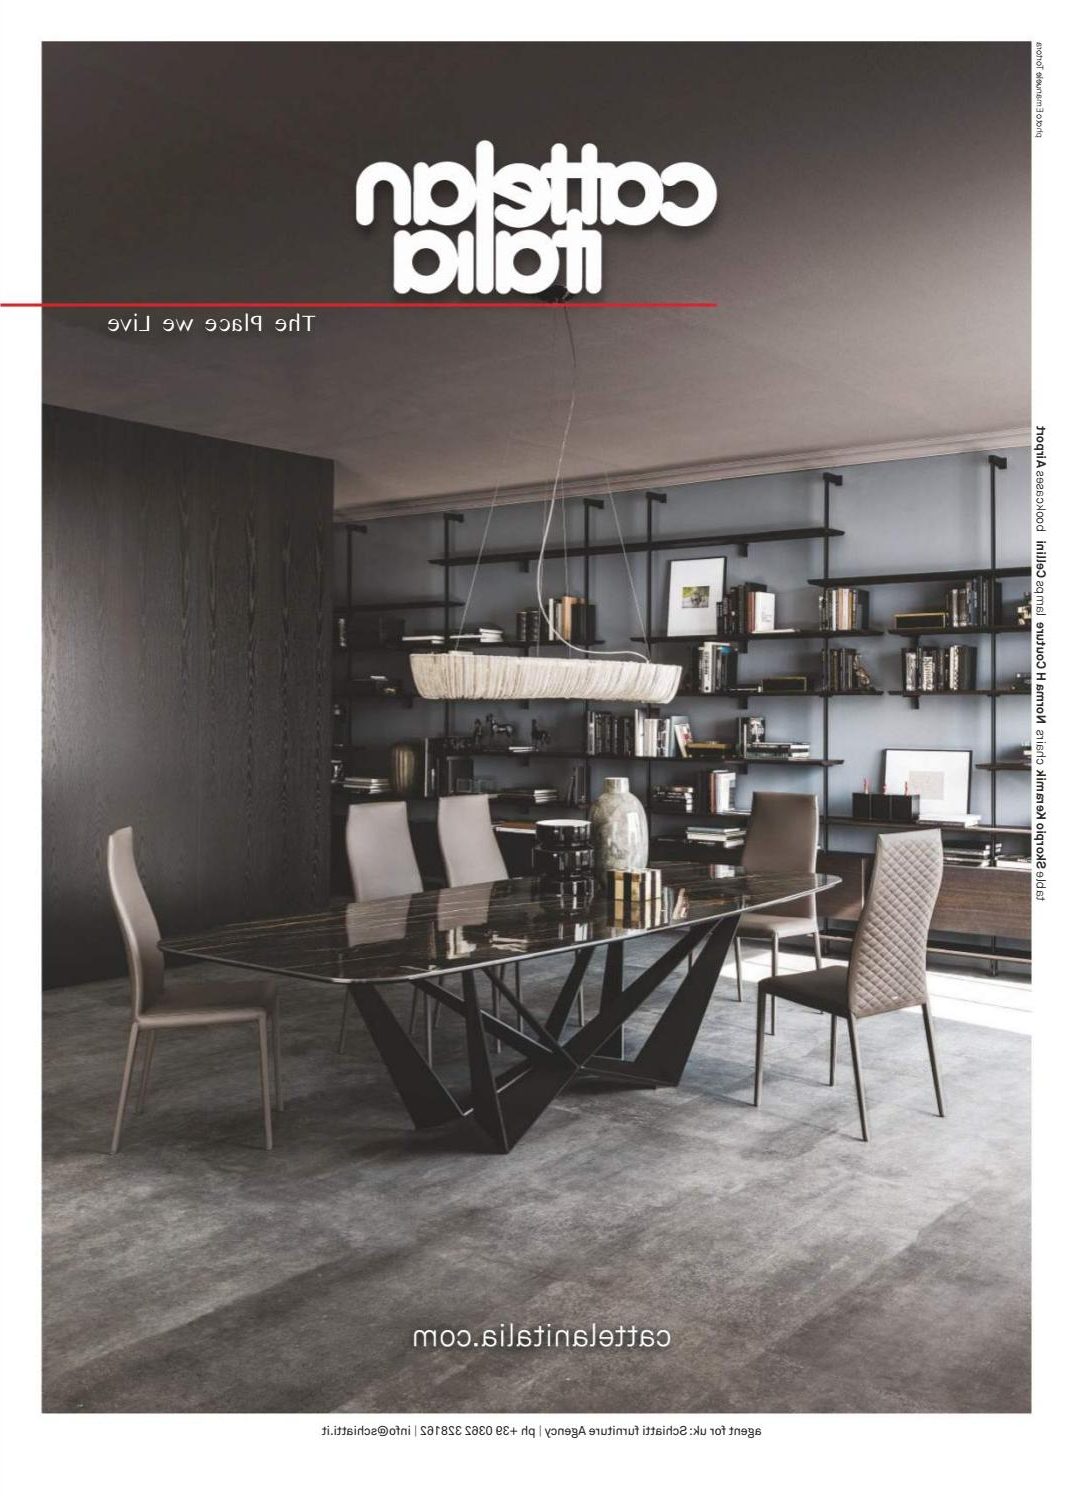 Shaw Dining Tables, Blonde Oak Intended For Most Popular Kdkdkkdkdkdkdaqdedomediomocho22 – Issuu (View 15 of 25)